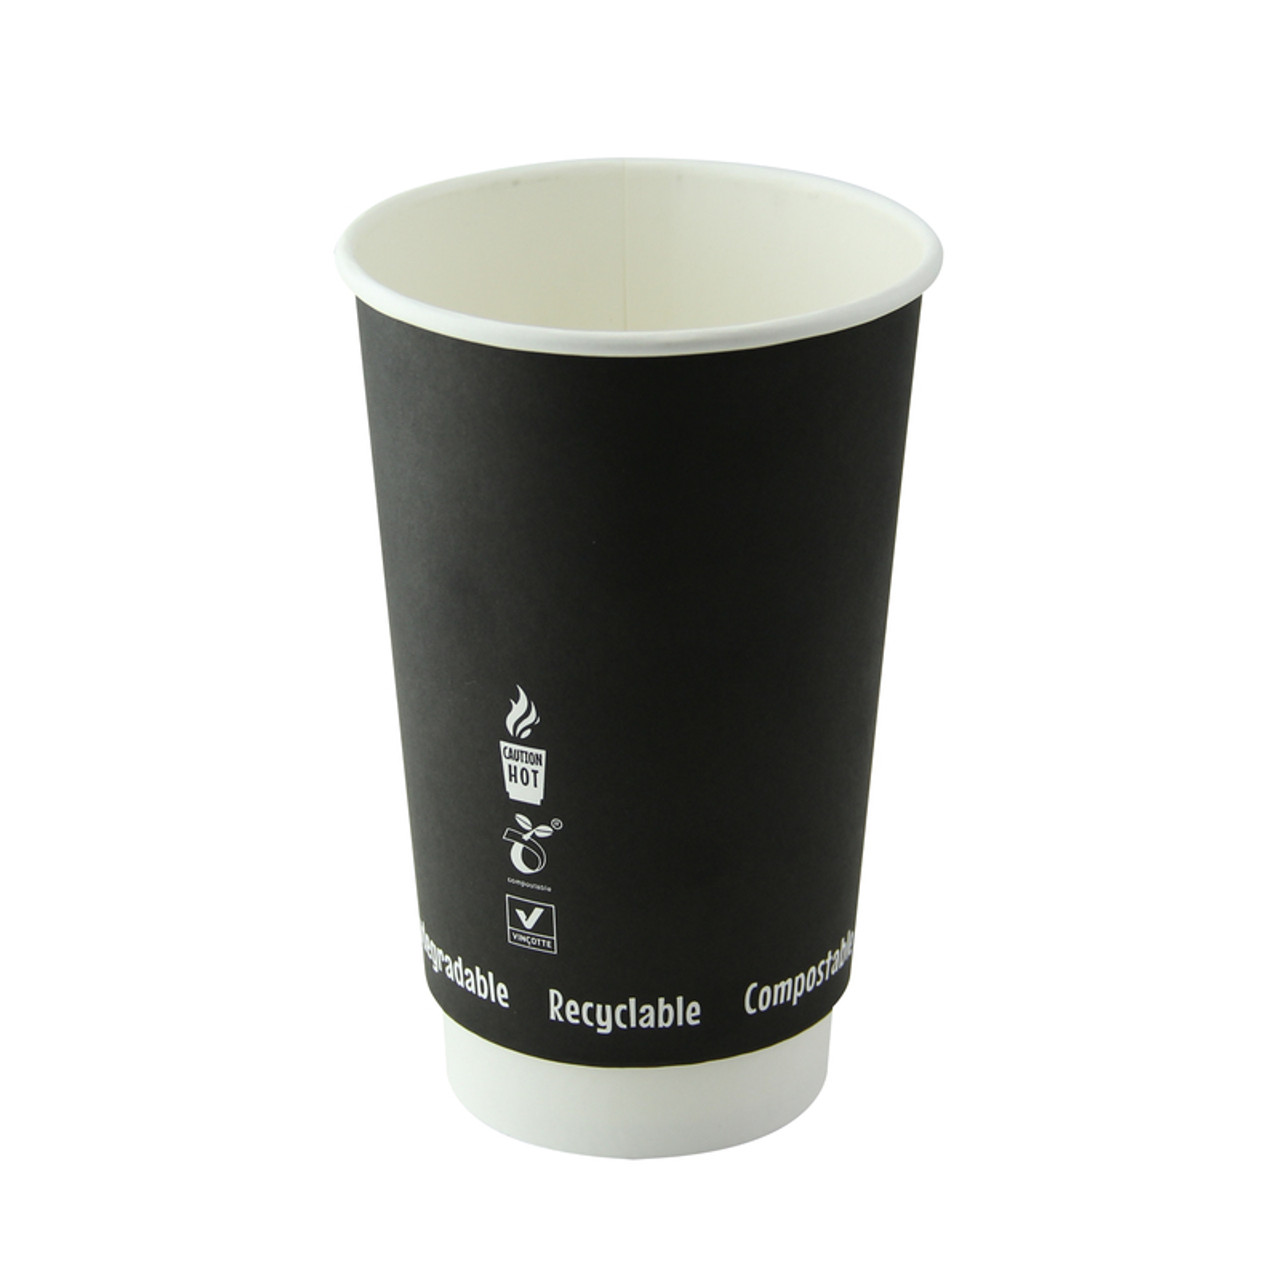 Double Wall Black Compostable Paper Cup -16oz Dia:3.5in H:5.35in